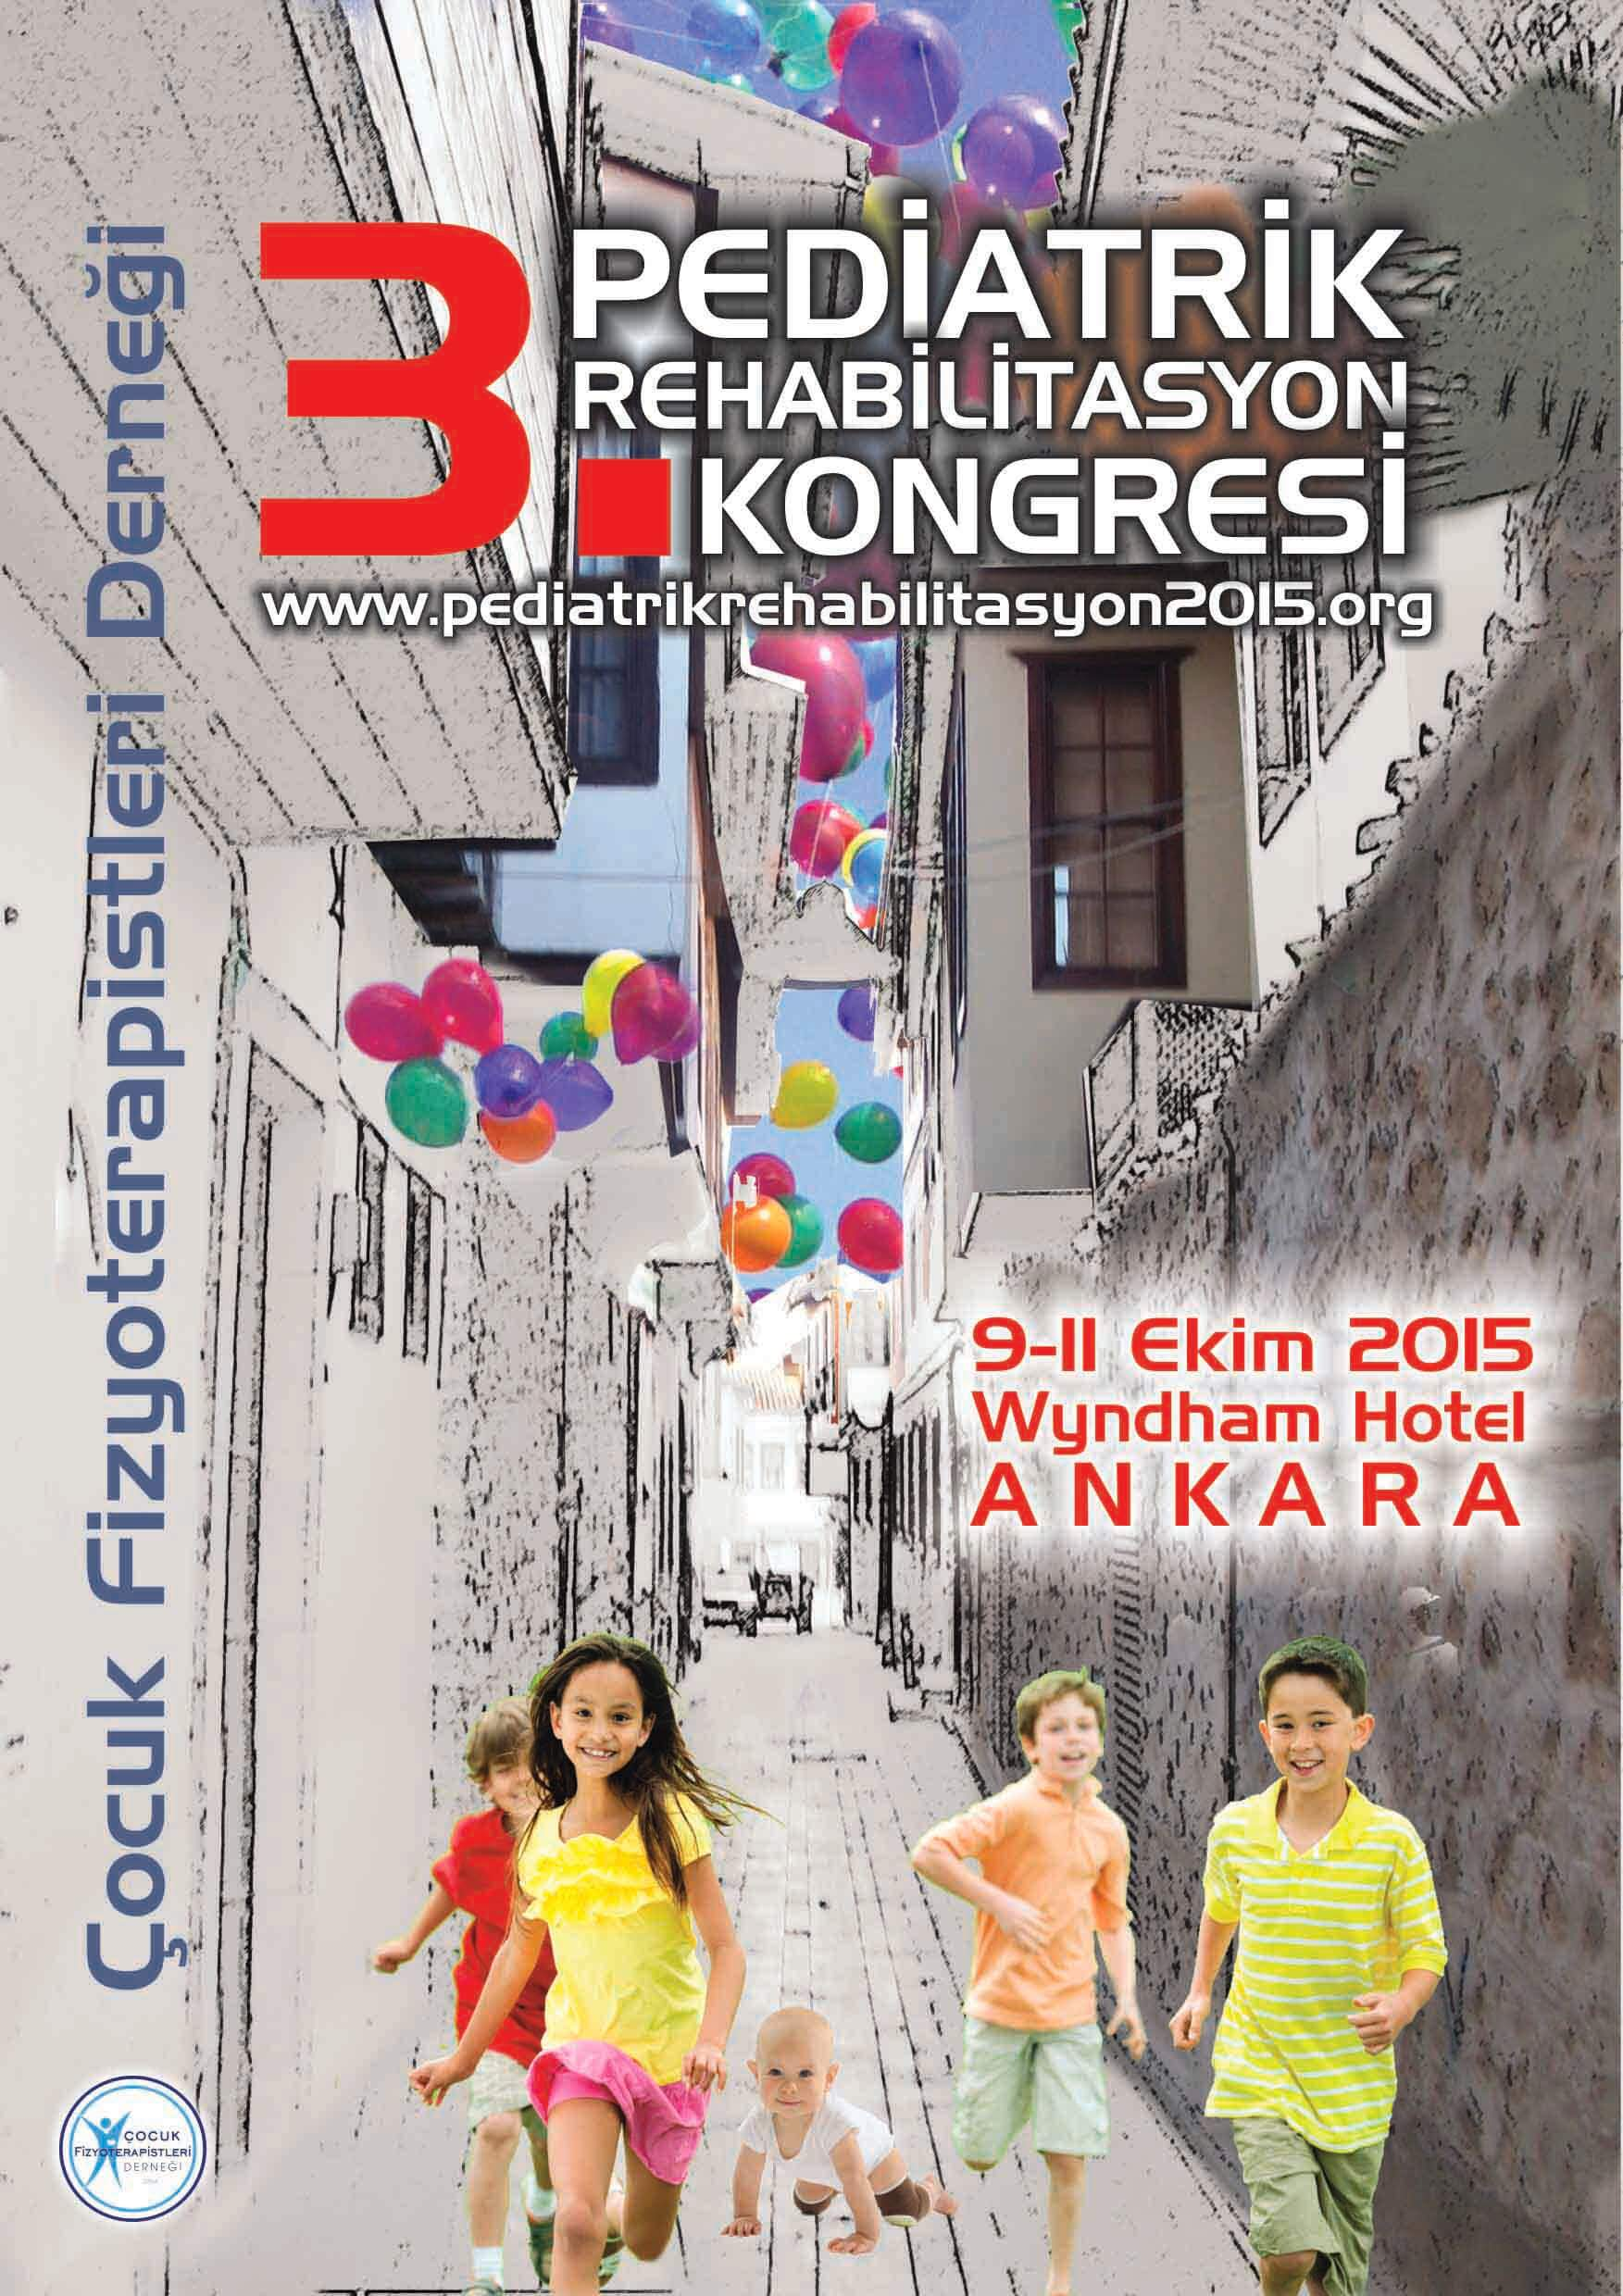 3. Pediatrik Rehabilitasyon Kongresi